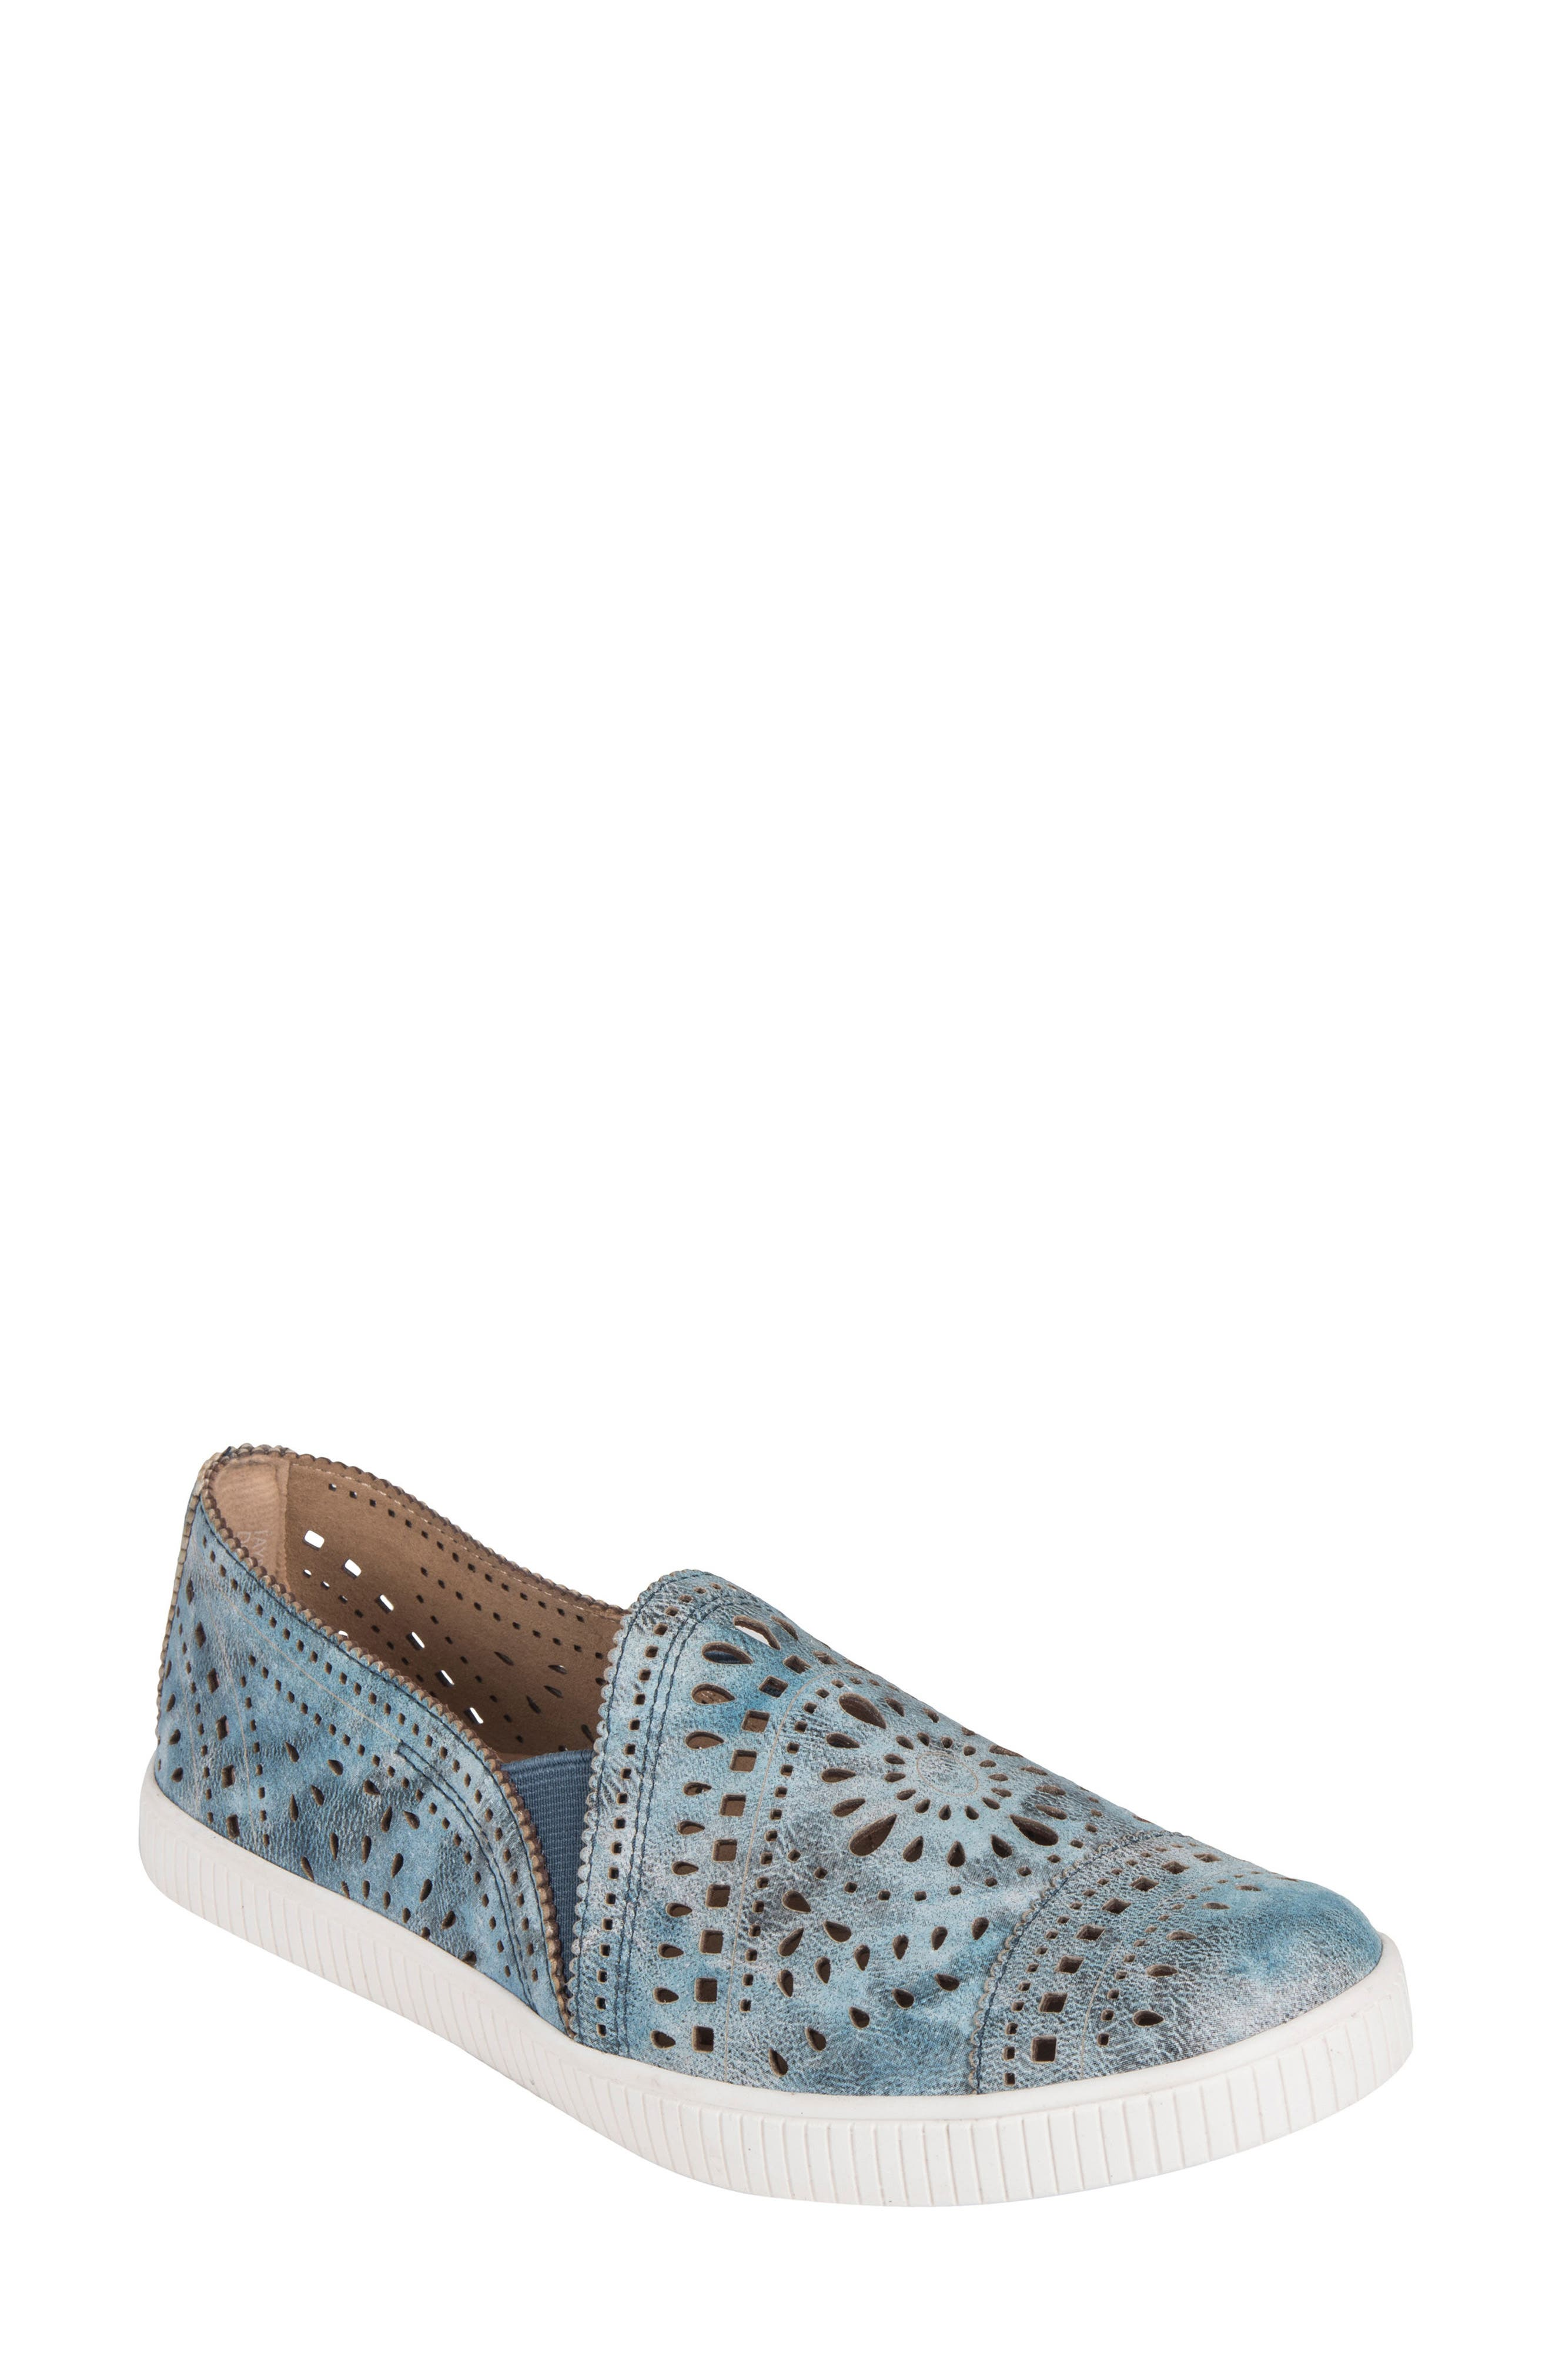 Tayberry Perforated Slip-On Sneaker,                             Main thumbnail 3, color,